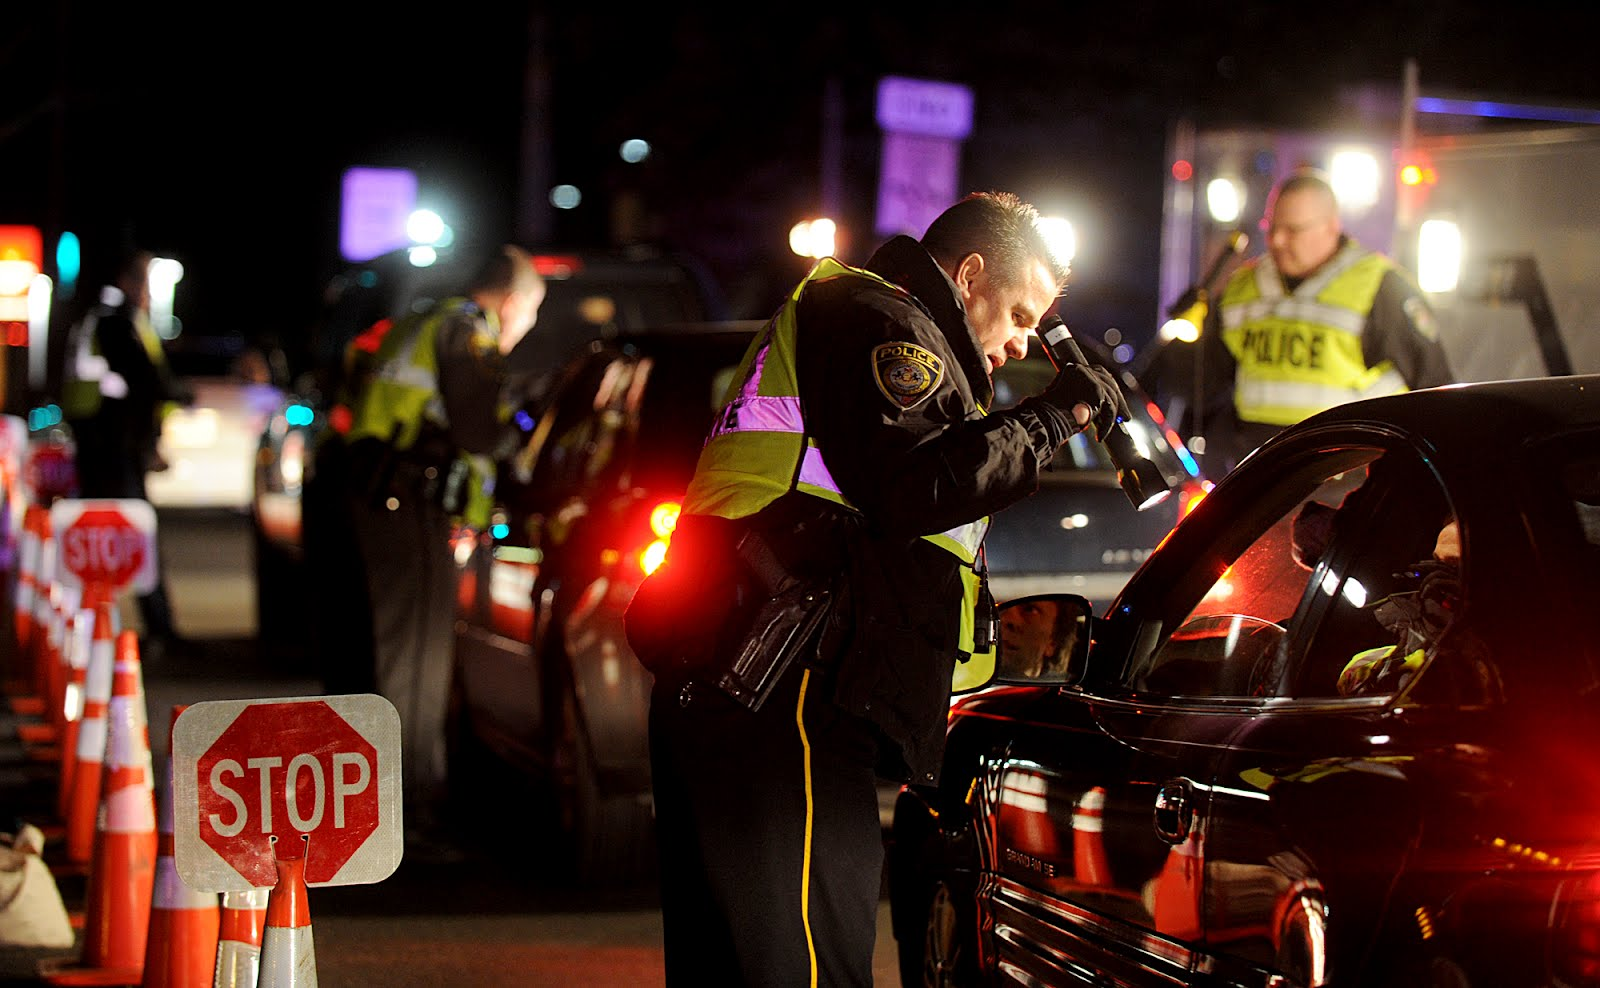 Checkpoint for DUI in Easton